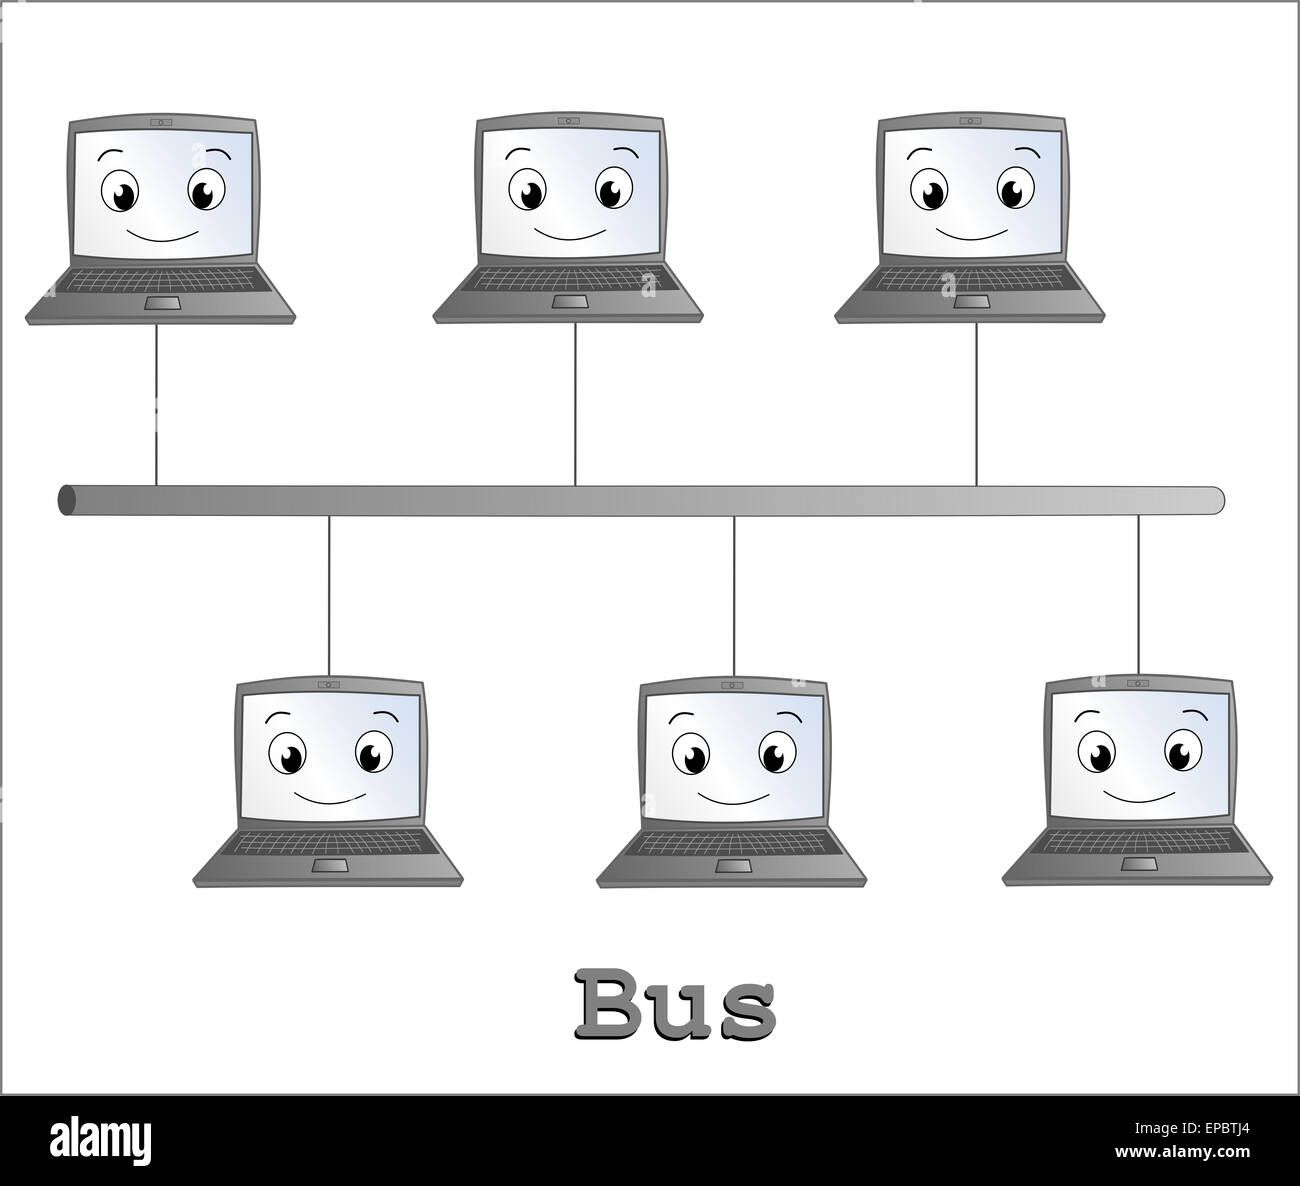 Bus network topology stock photos bus network topology stock bus network topology cartoon illustration stock image publicscrutiny Gallery